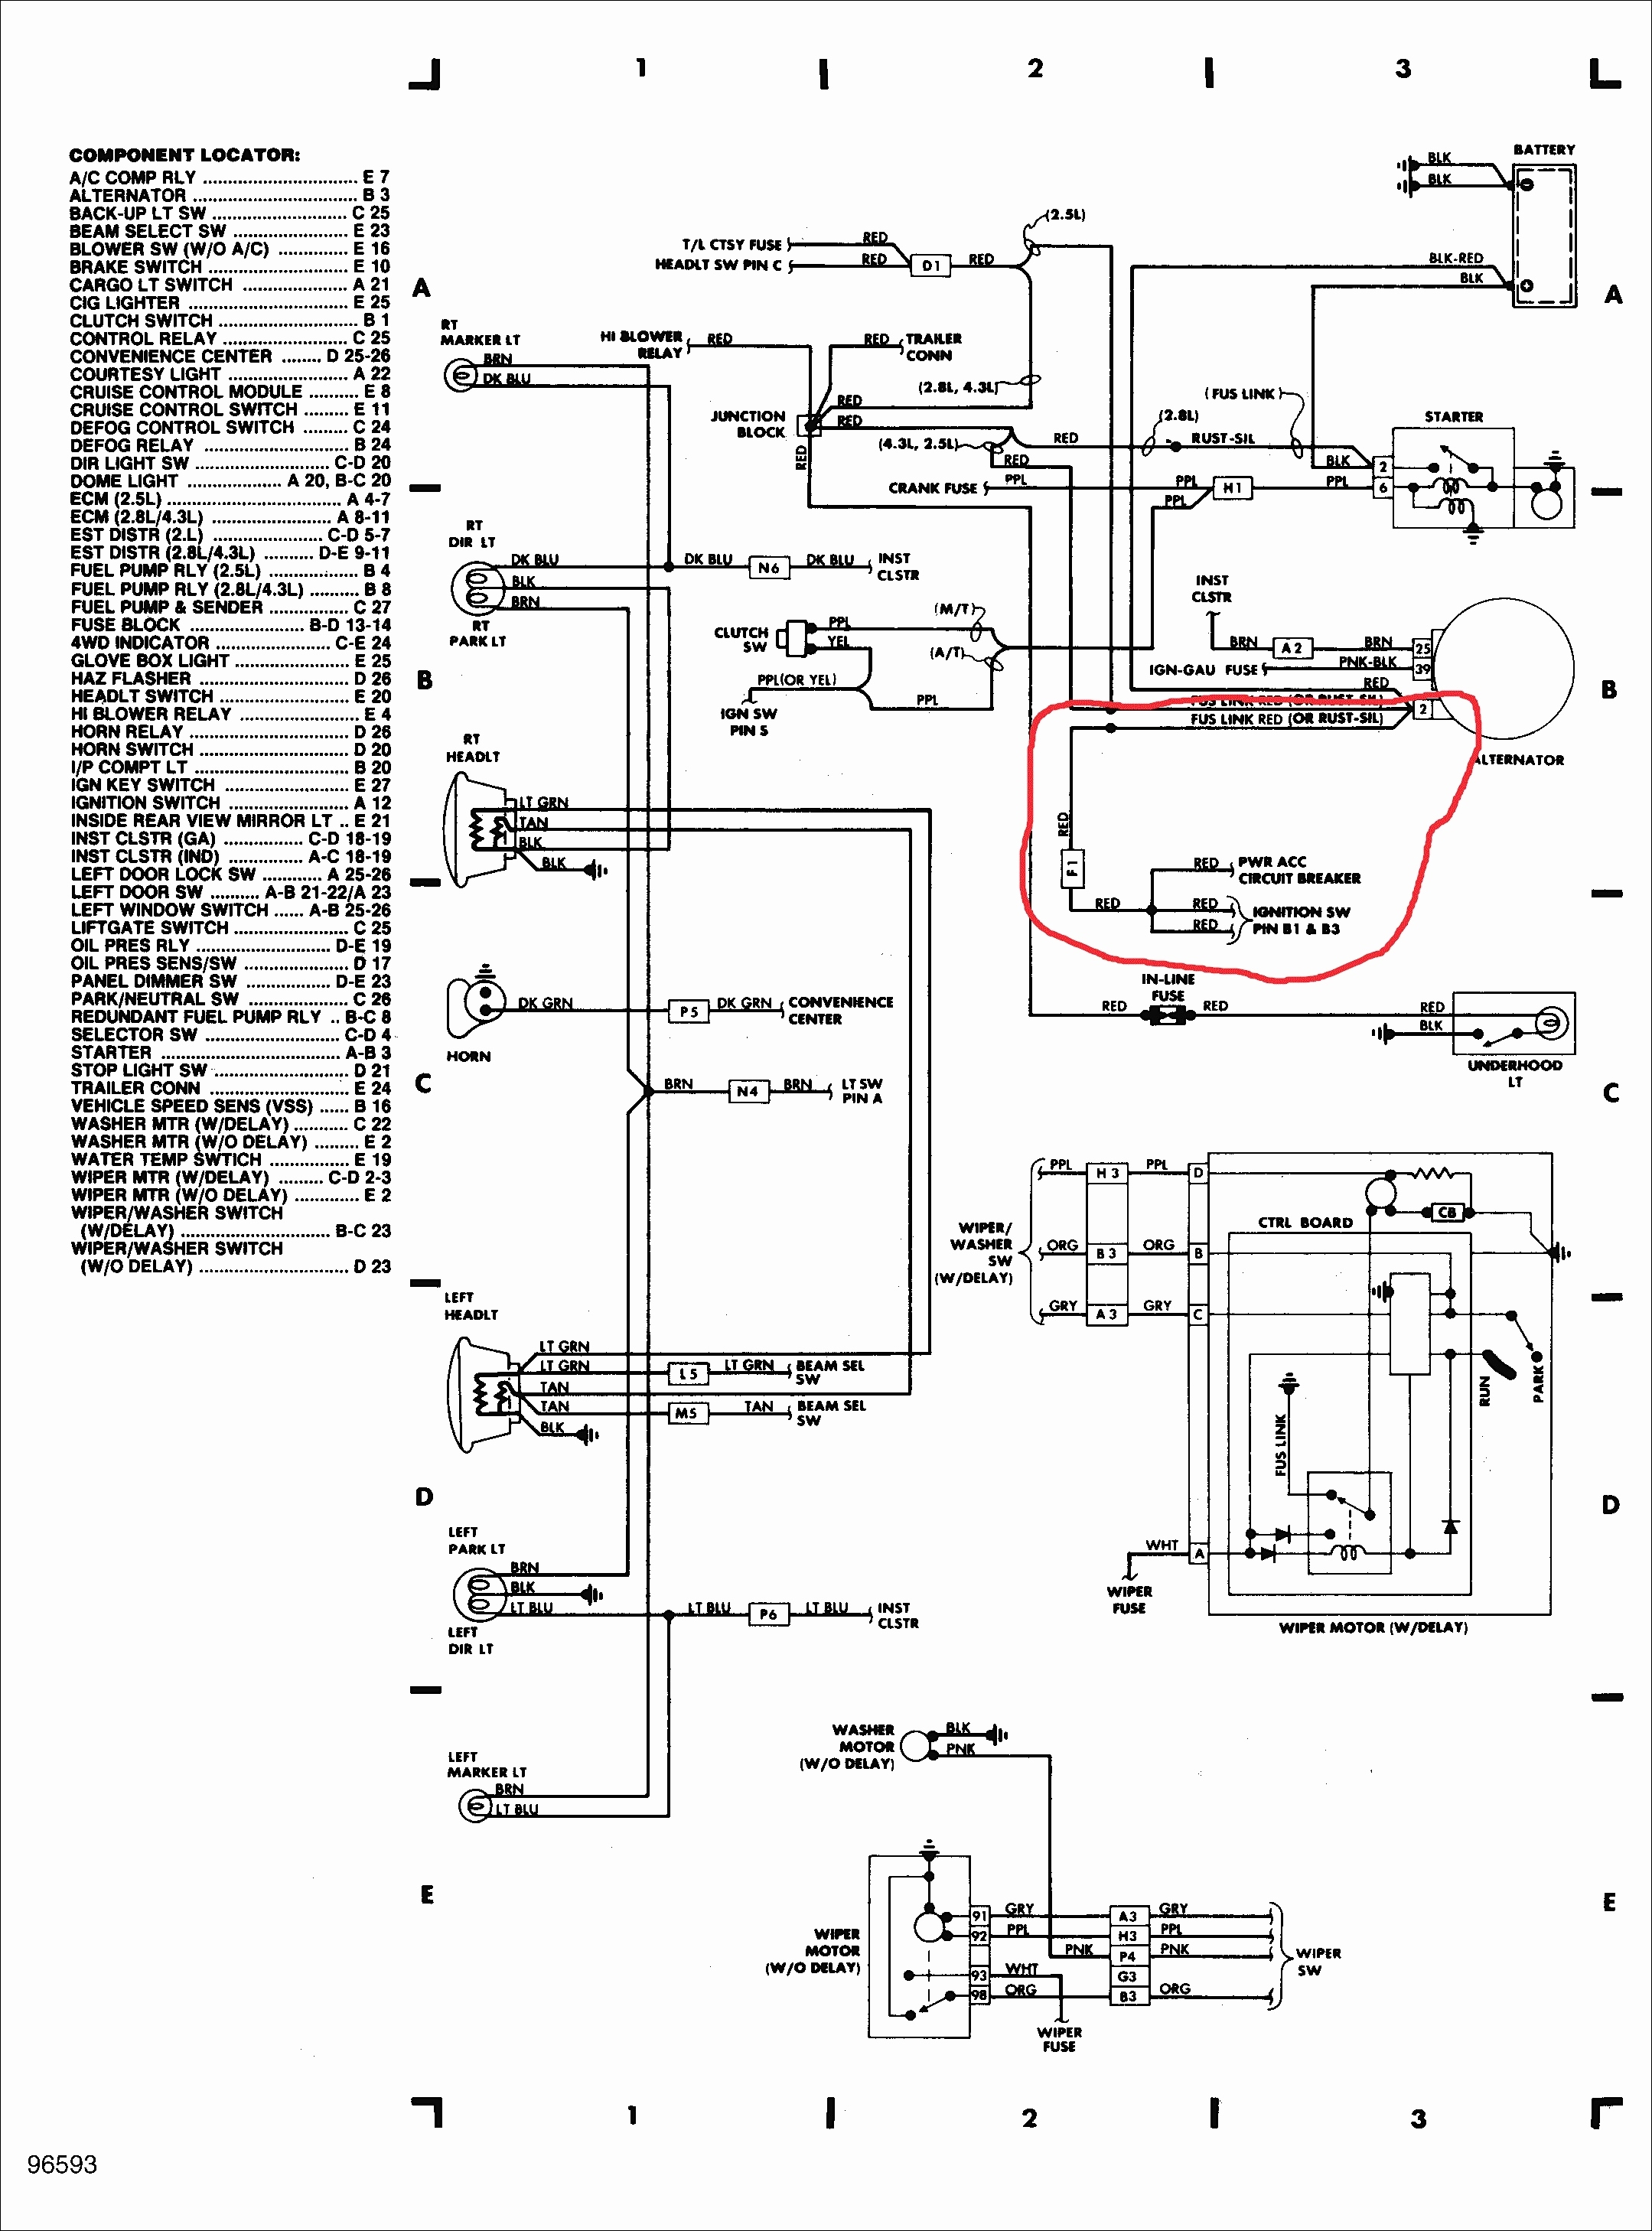 3 wire ignition switch schematic diagram 3 wire ignition switch diagram #1